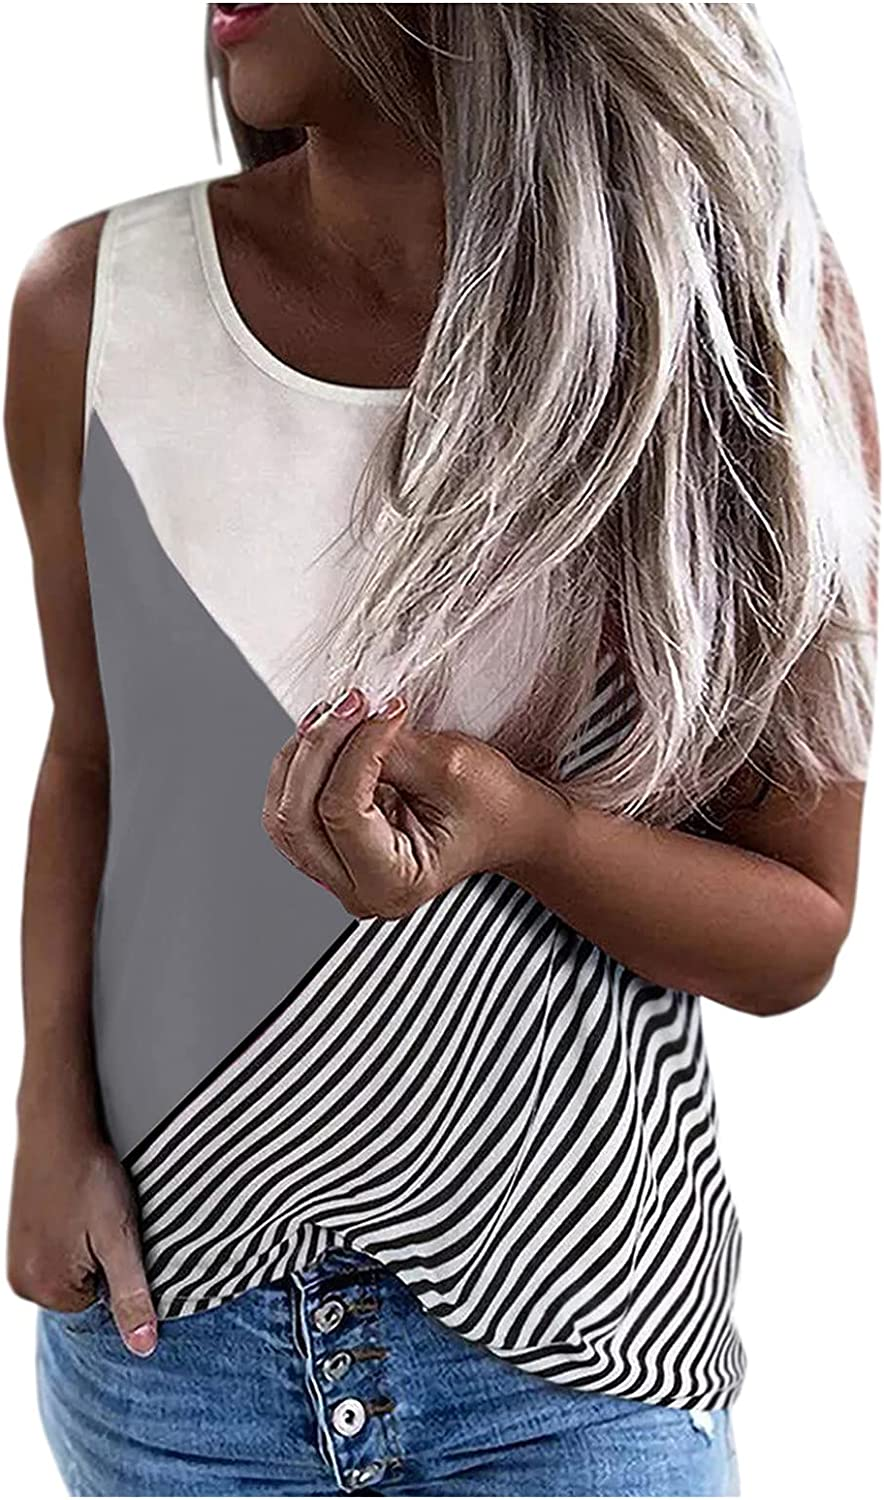 Changeshopping Women Round Neck Tops,Casual Contrast Striped Vest,Summer Loose Sleeveless Shirts Tops.